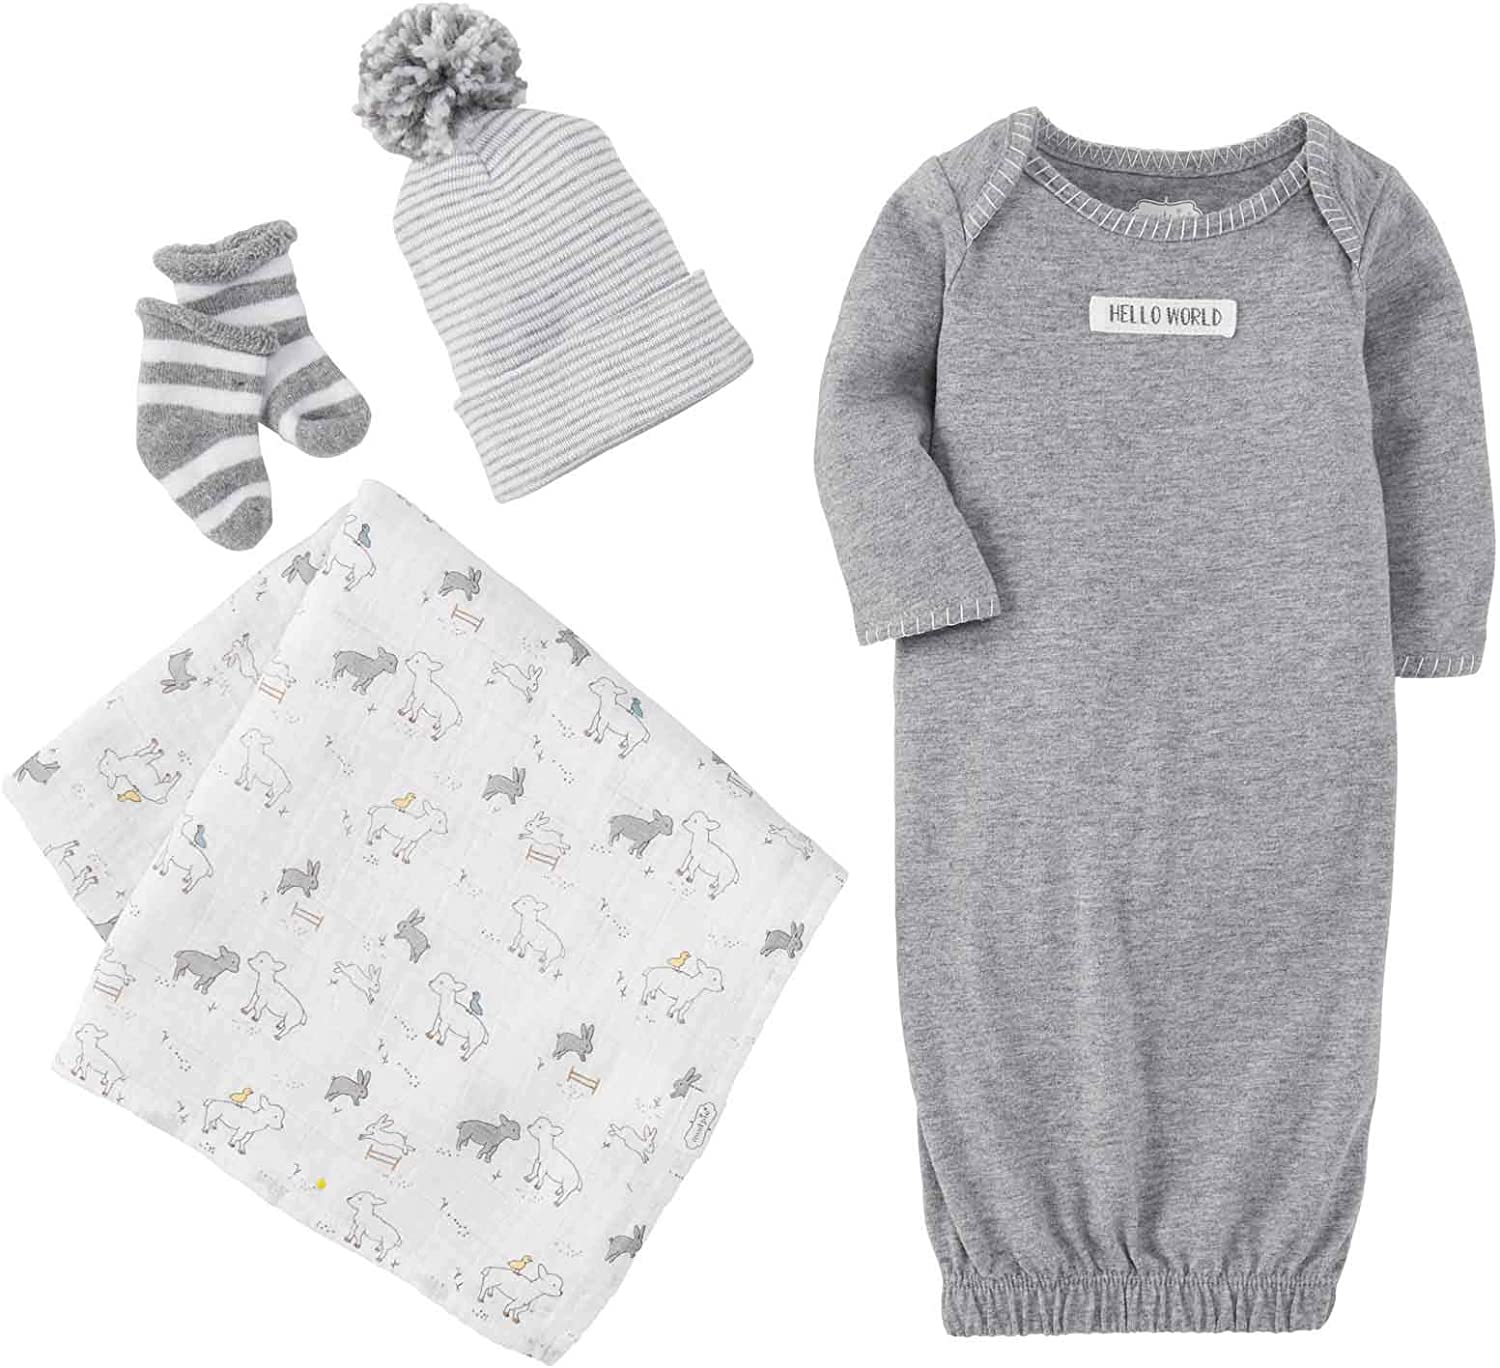 Mud Pie Baby Newborn TAKE ME Home Layette Set, Gray